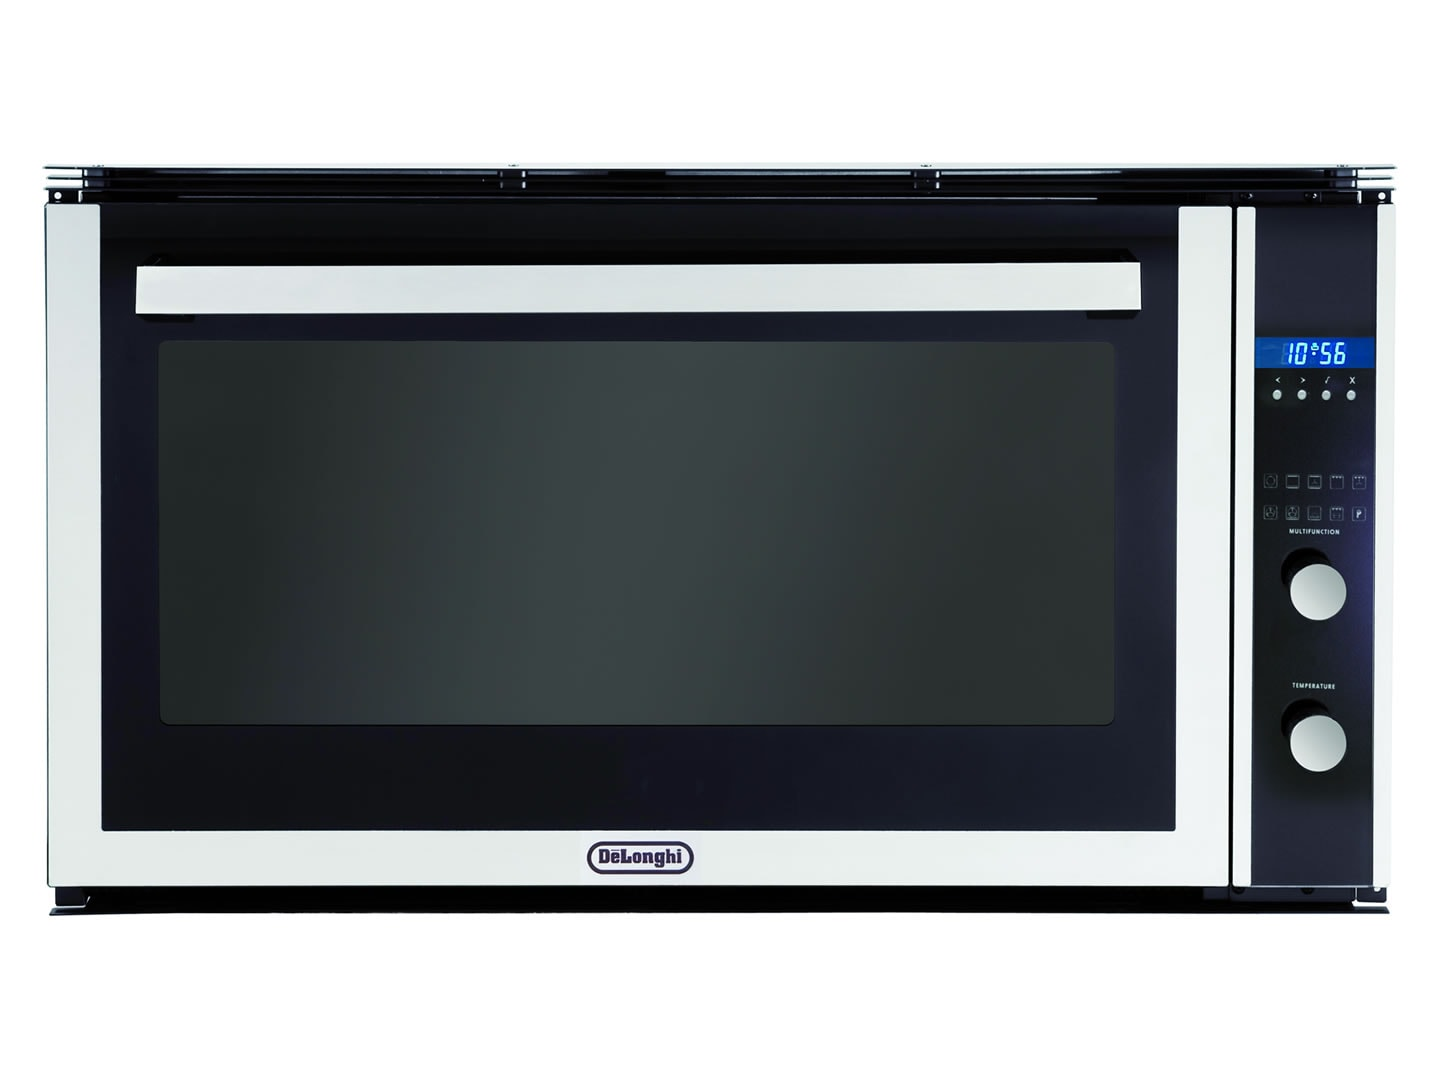 DeLonghi Multifunction Pyrolytic 90cm Oven - DE908MP